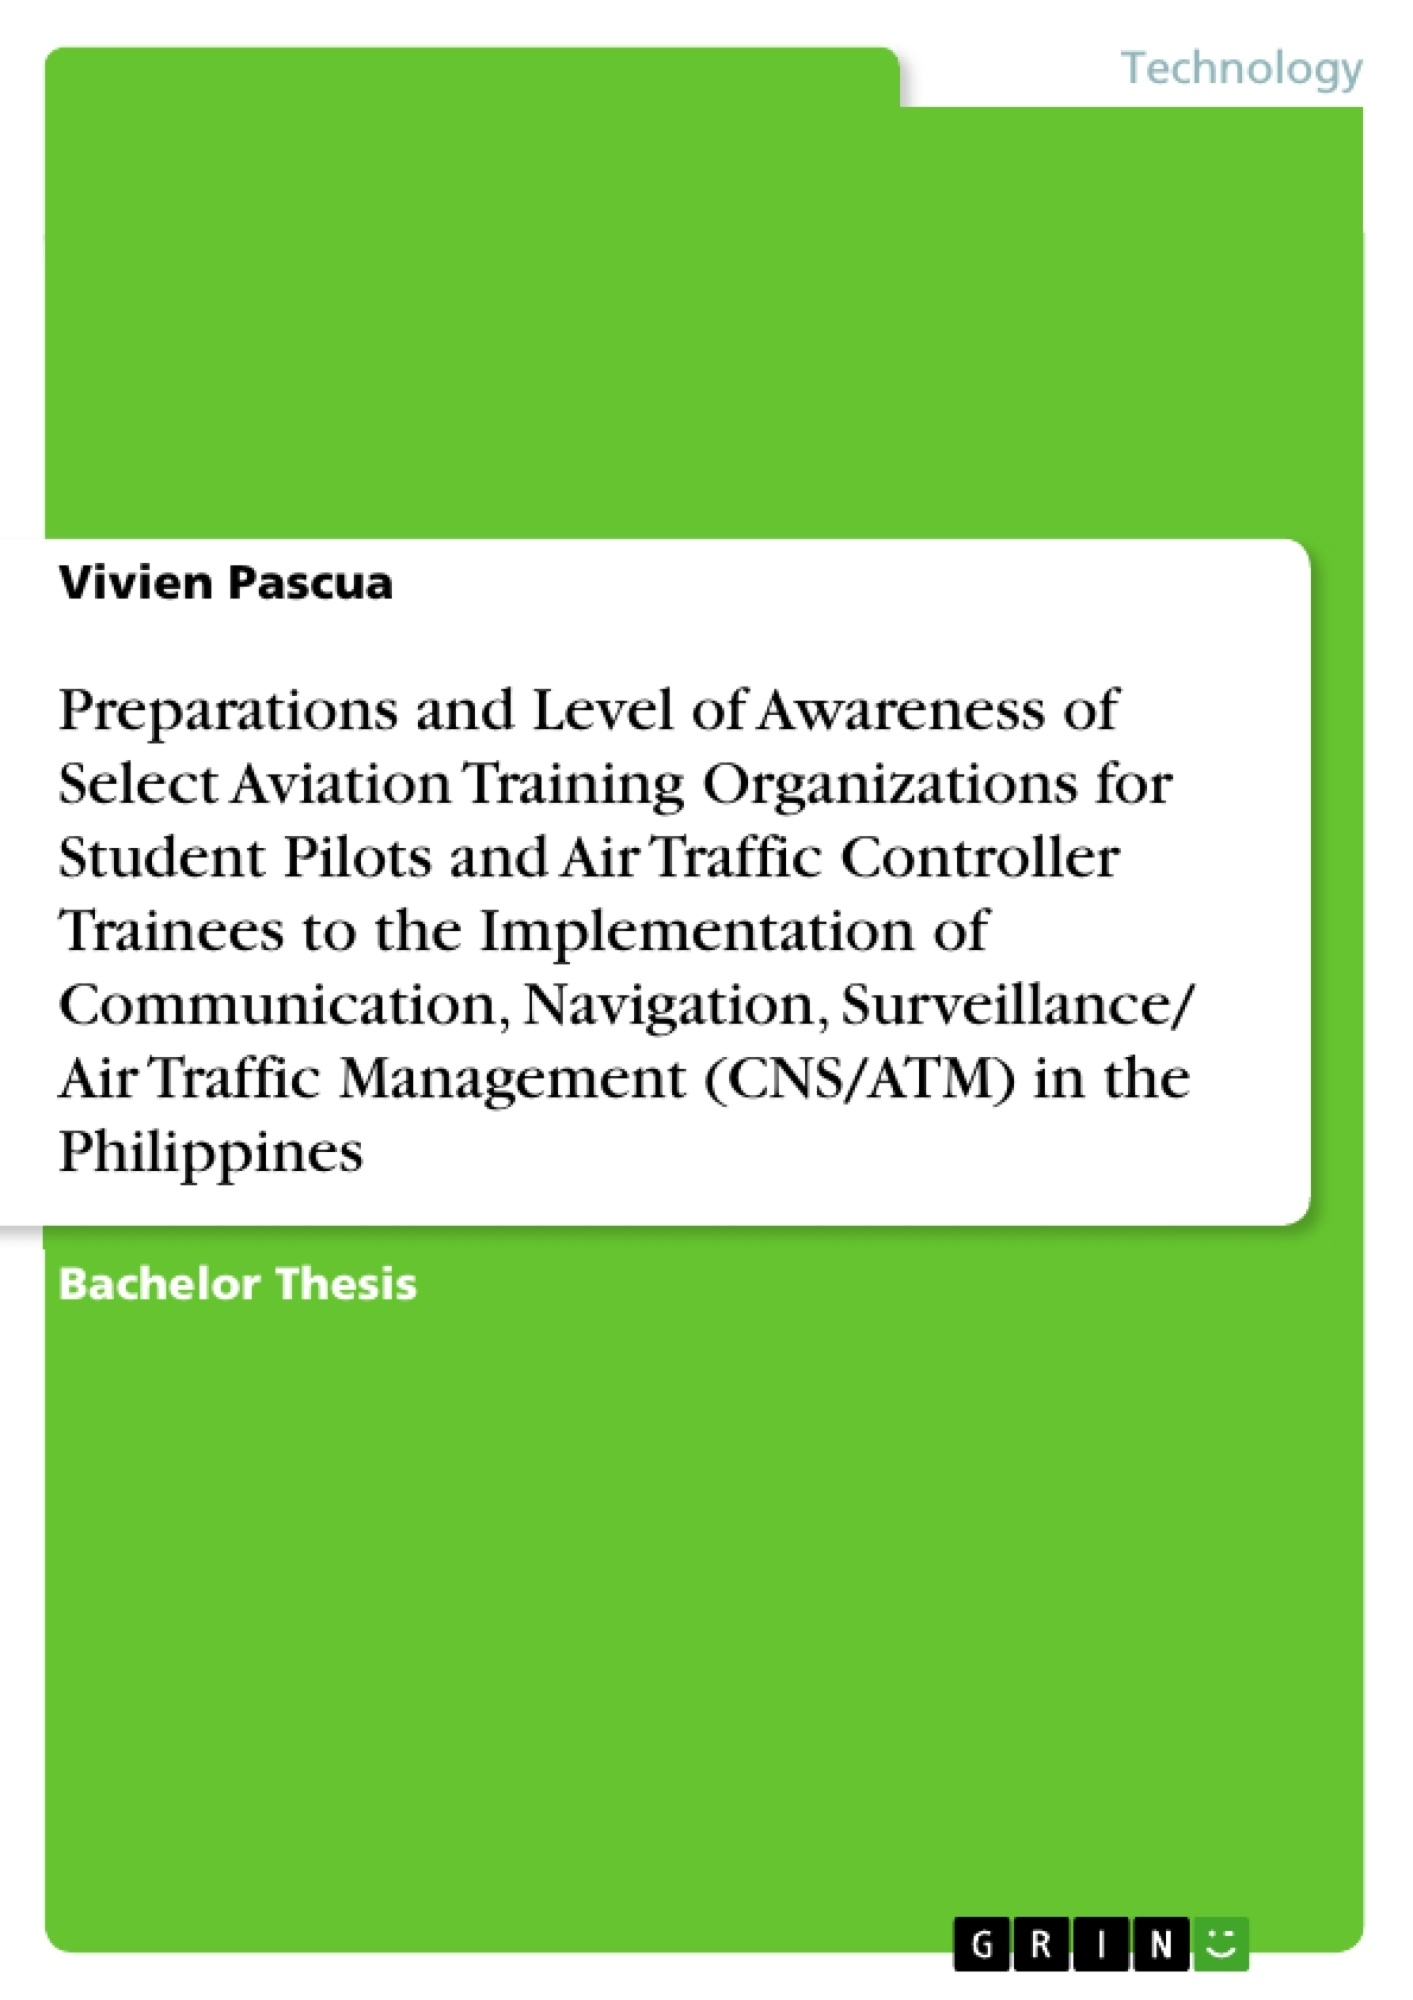 Title: Preparations and Level of Awareness of Select Aviation Training Organizations for Student Pilots and Air Traffic Controller Trainees to the Implementation of Communication, Navigation, Surveillance/ Air Traffic Management (CNS/ATM) in the Philippines